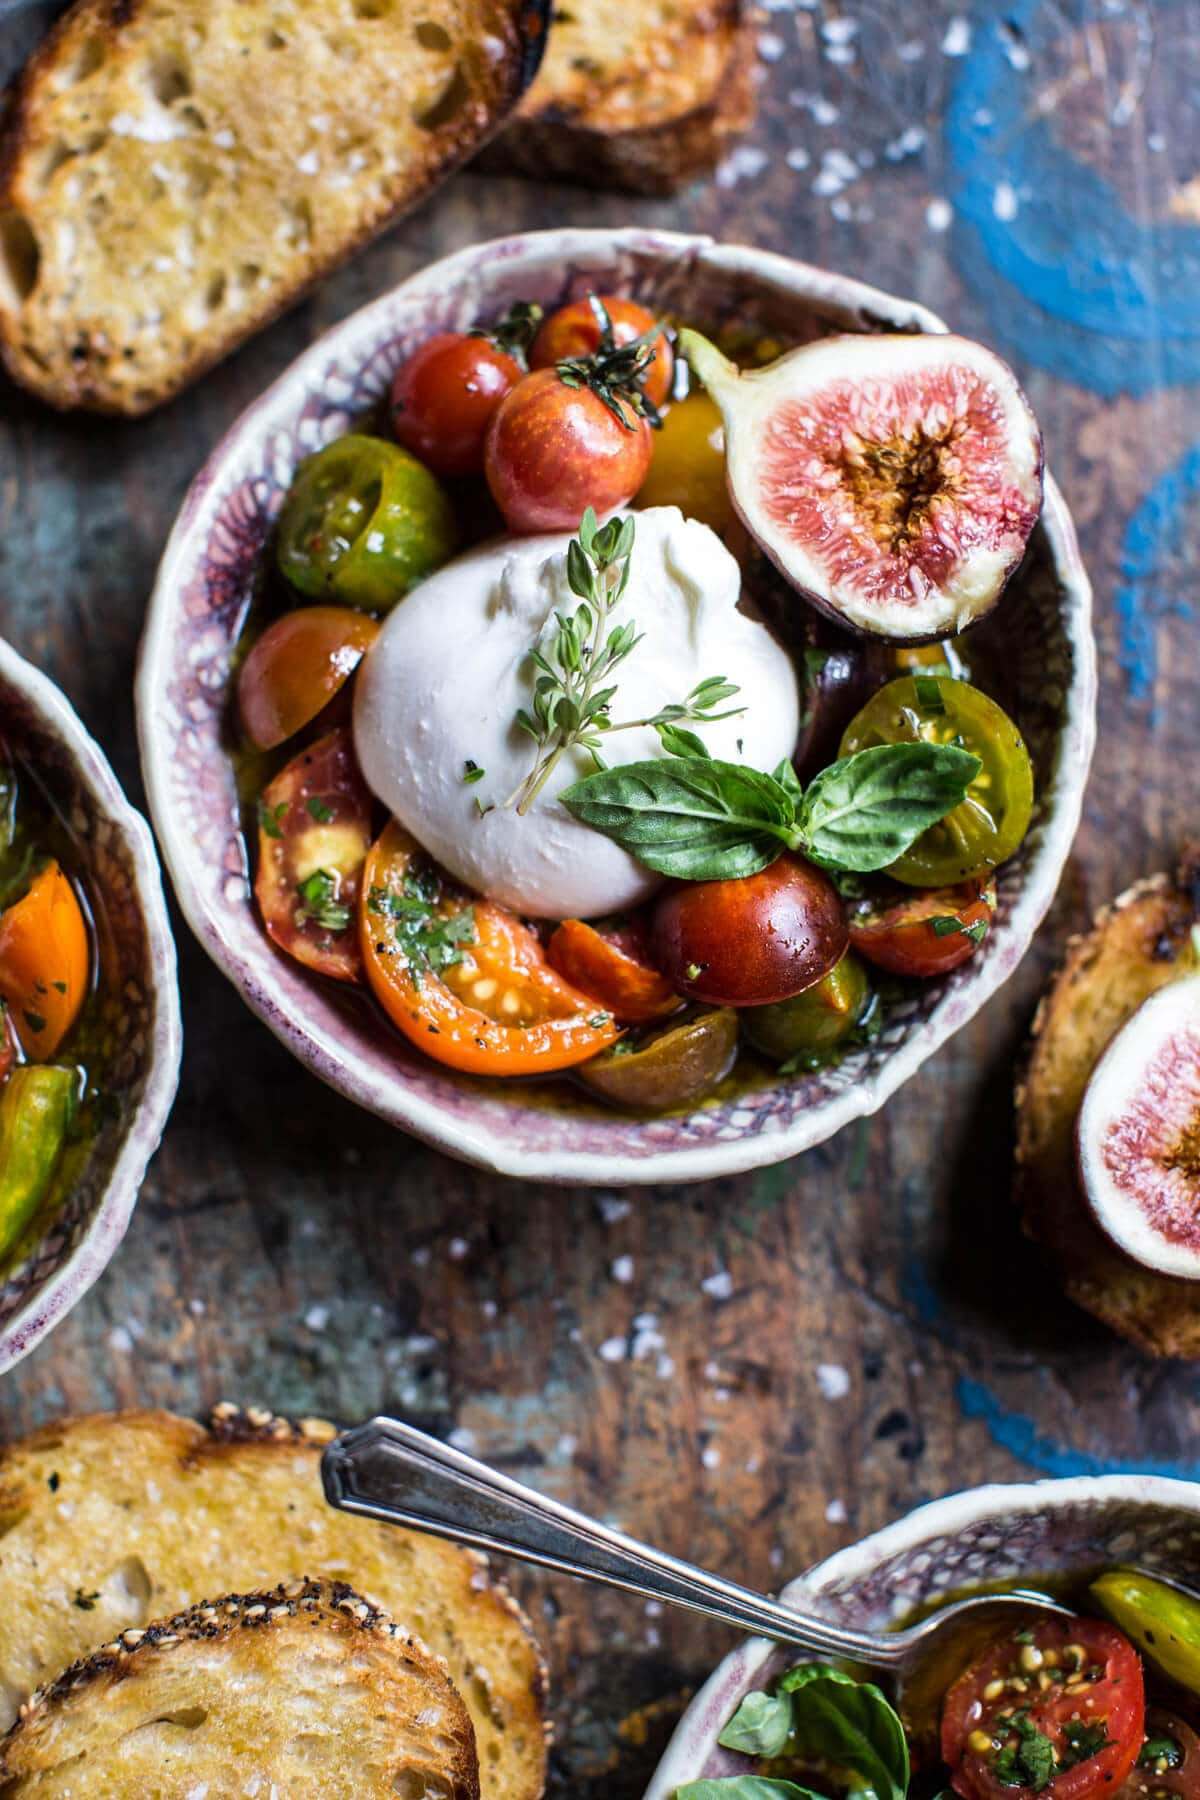 Marinated-Cherry-Tomatoes-with-Burrata-Toast-1.jpg